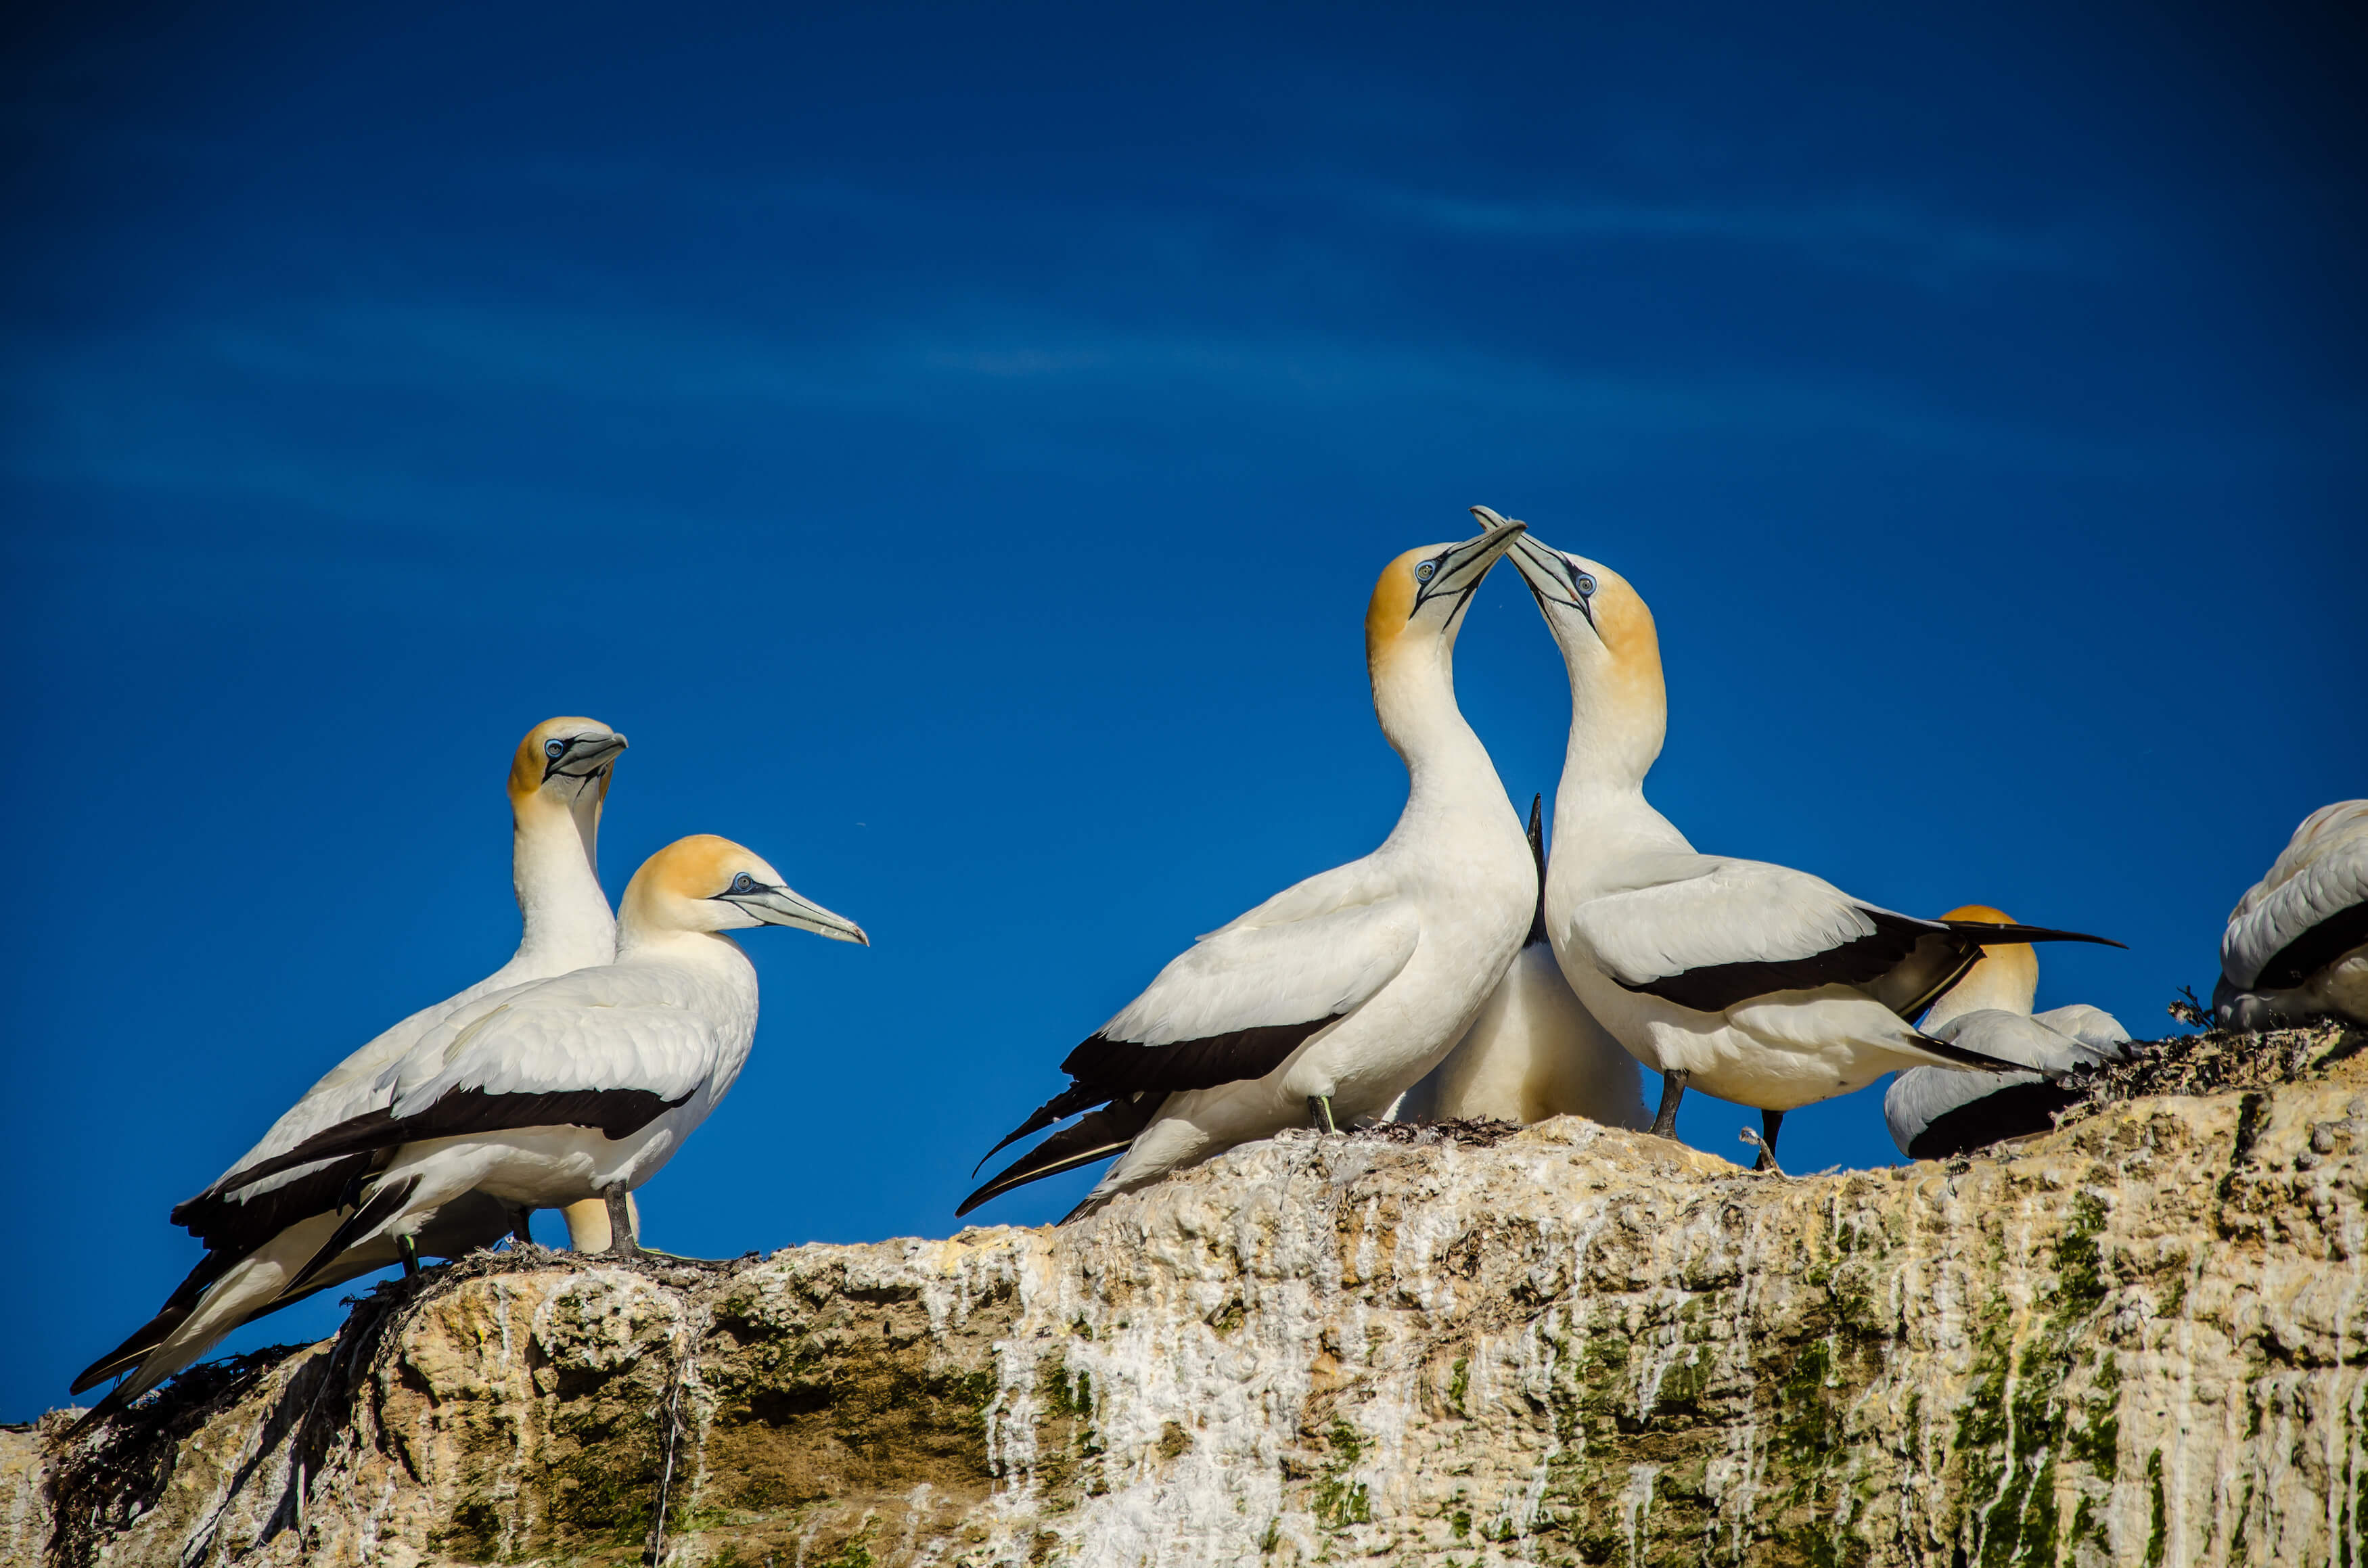 Gannet Colony at Cape Kidnappers in Hawkes Bay near Hastings on North Island, New Zealand